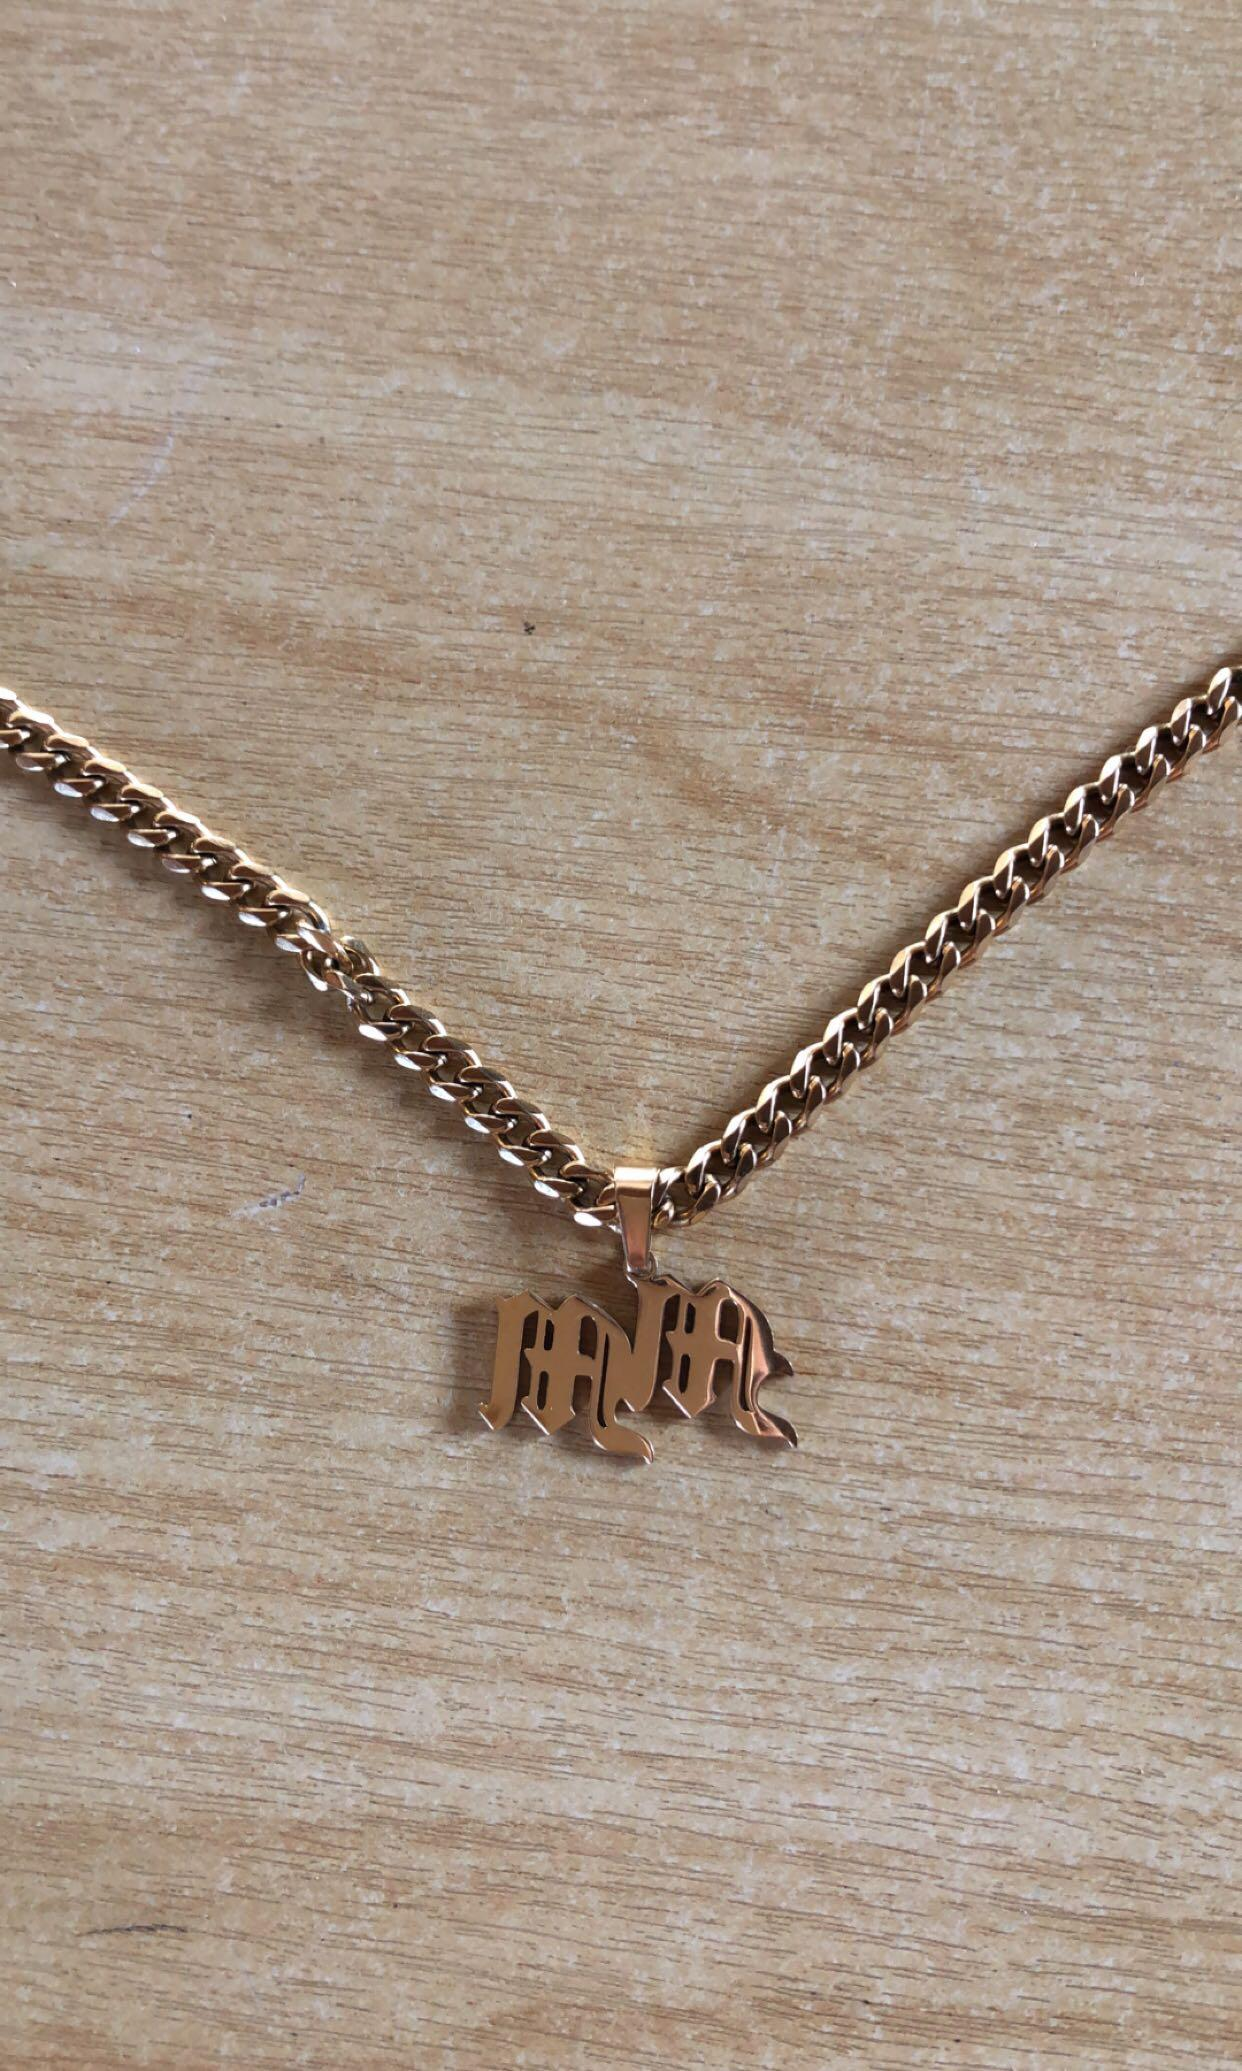 MM Initial necklace